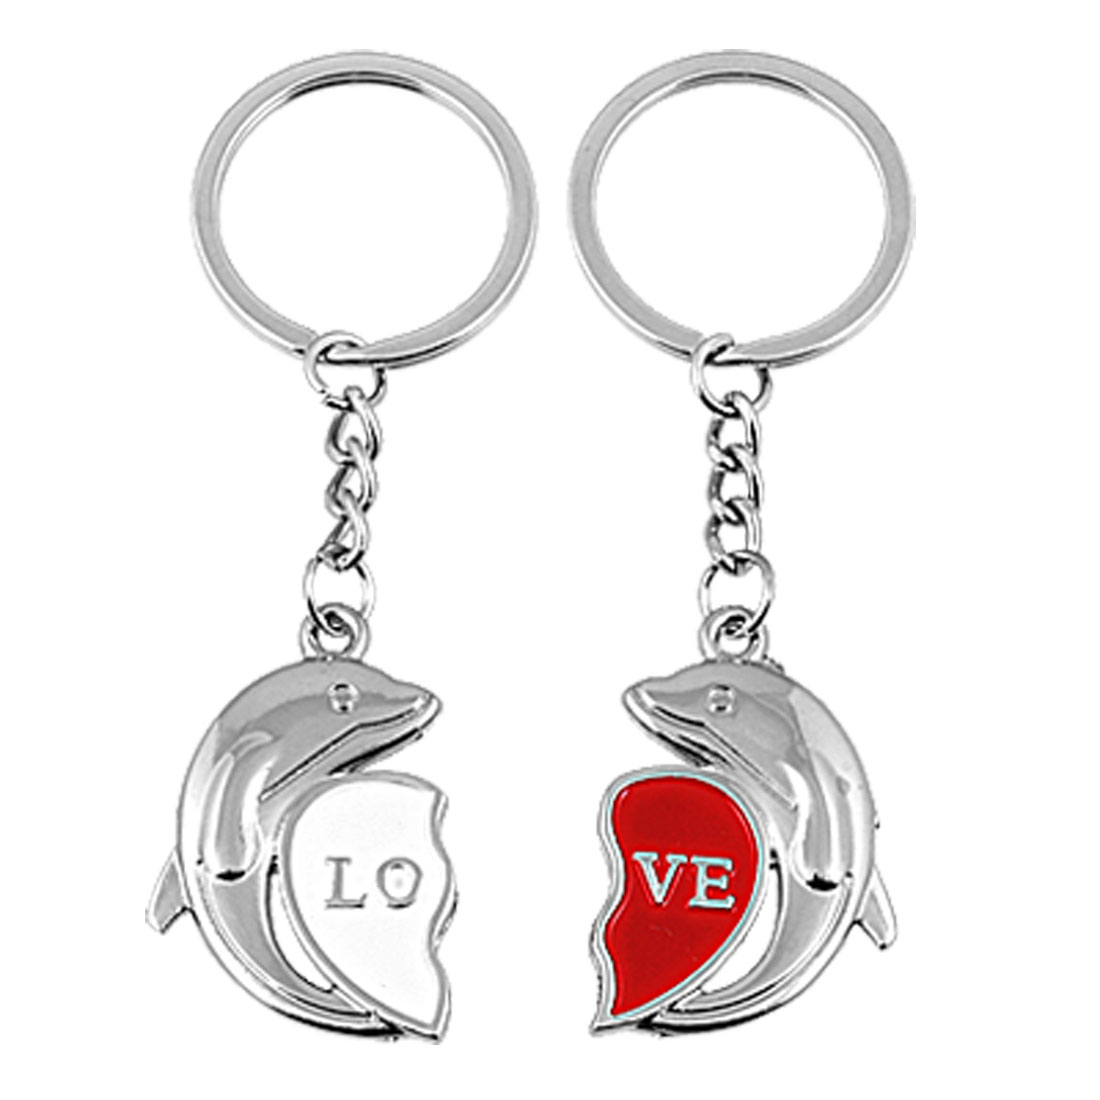 2 Pcs Couple Dolphin Love Heart Key Chain Ring Keychain